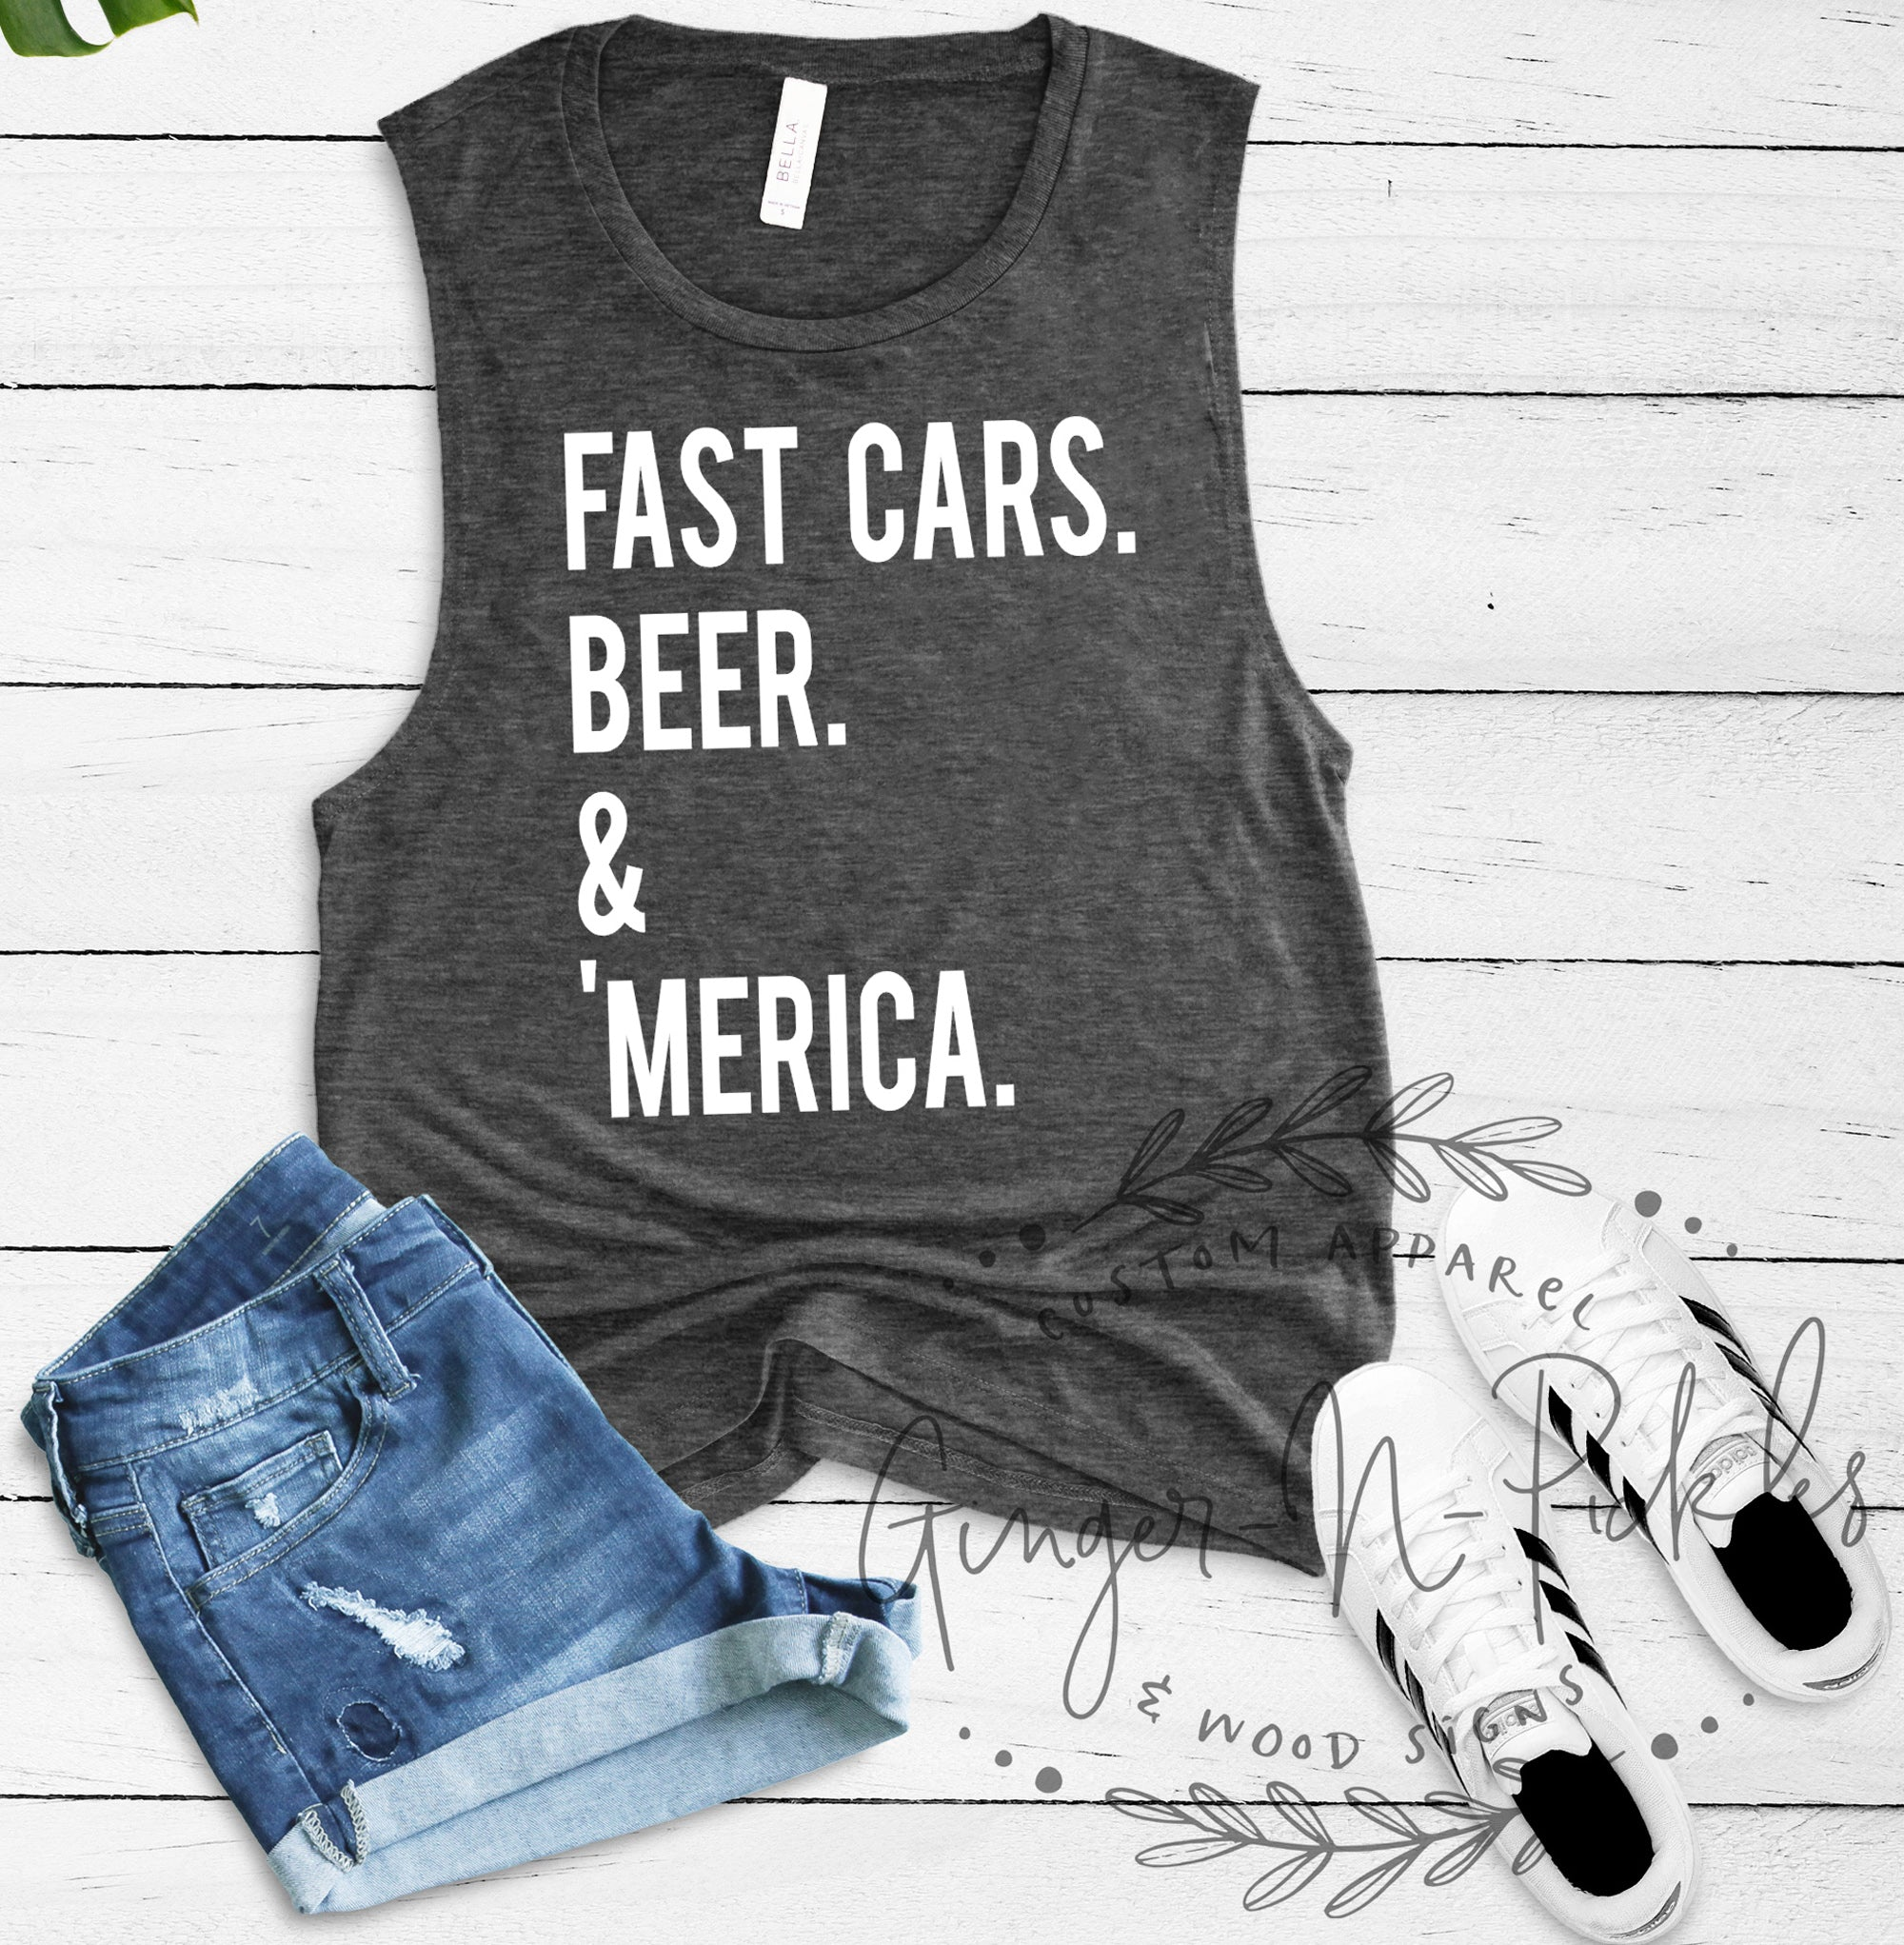 Fast Cars Beer & Merica Muscle Tank for Women Stock Car Race Fan Shirt Fast Cars Shirt Race Day Shirt Dirt Race Track Shirt Racing Fan Shirt